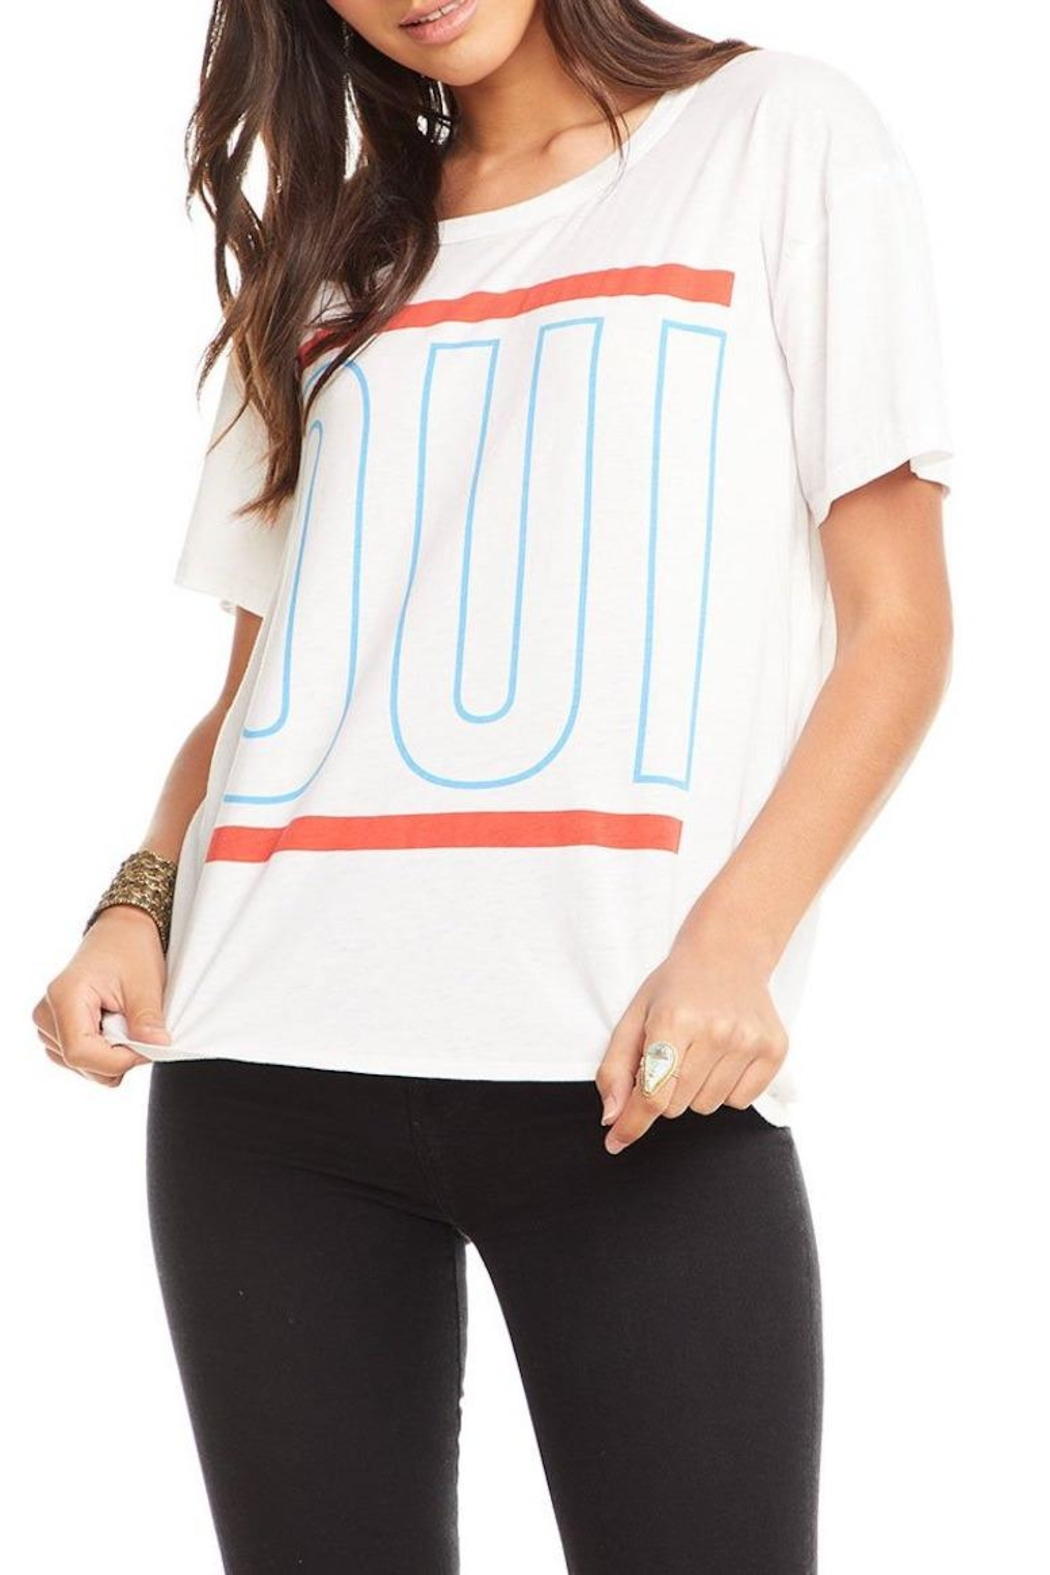 Chaser Oui Graphic Tee - Main Image